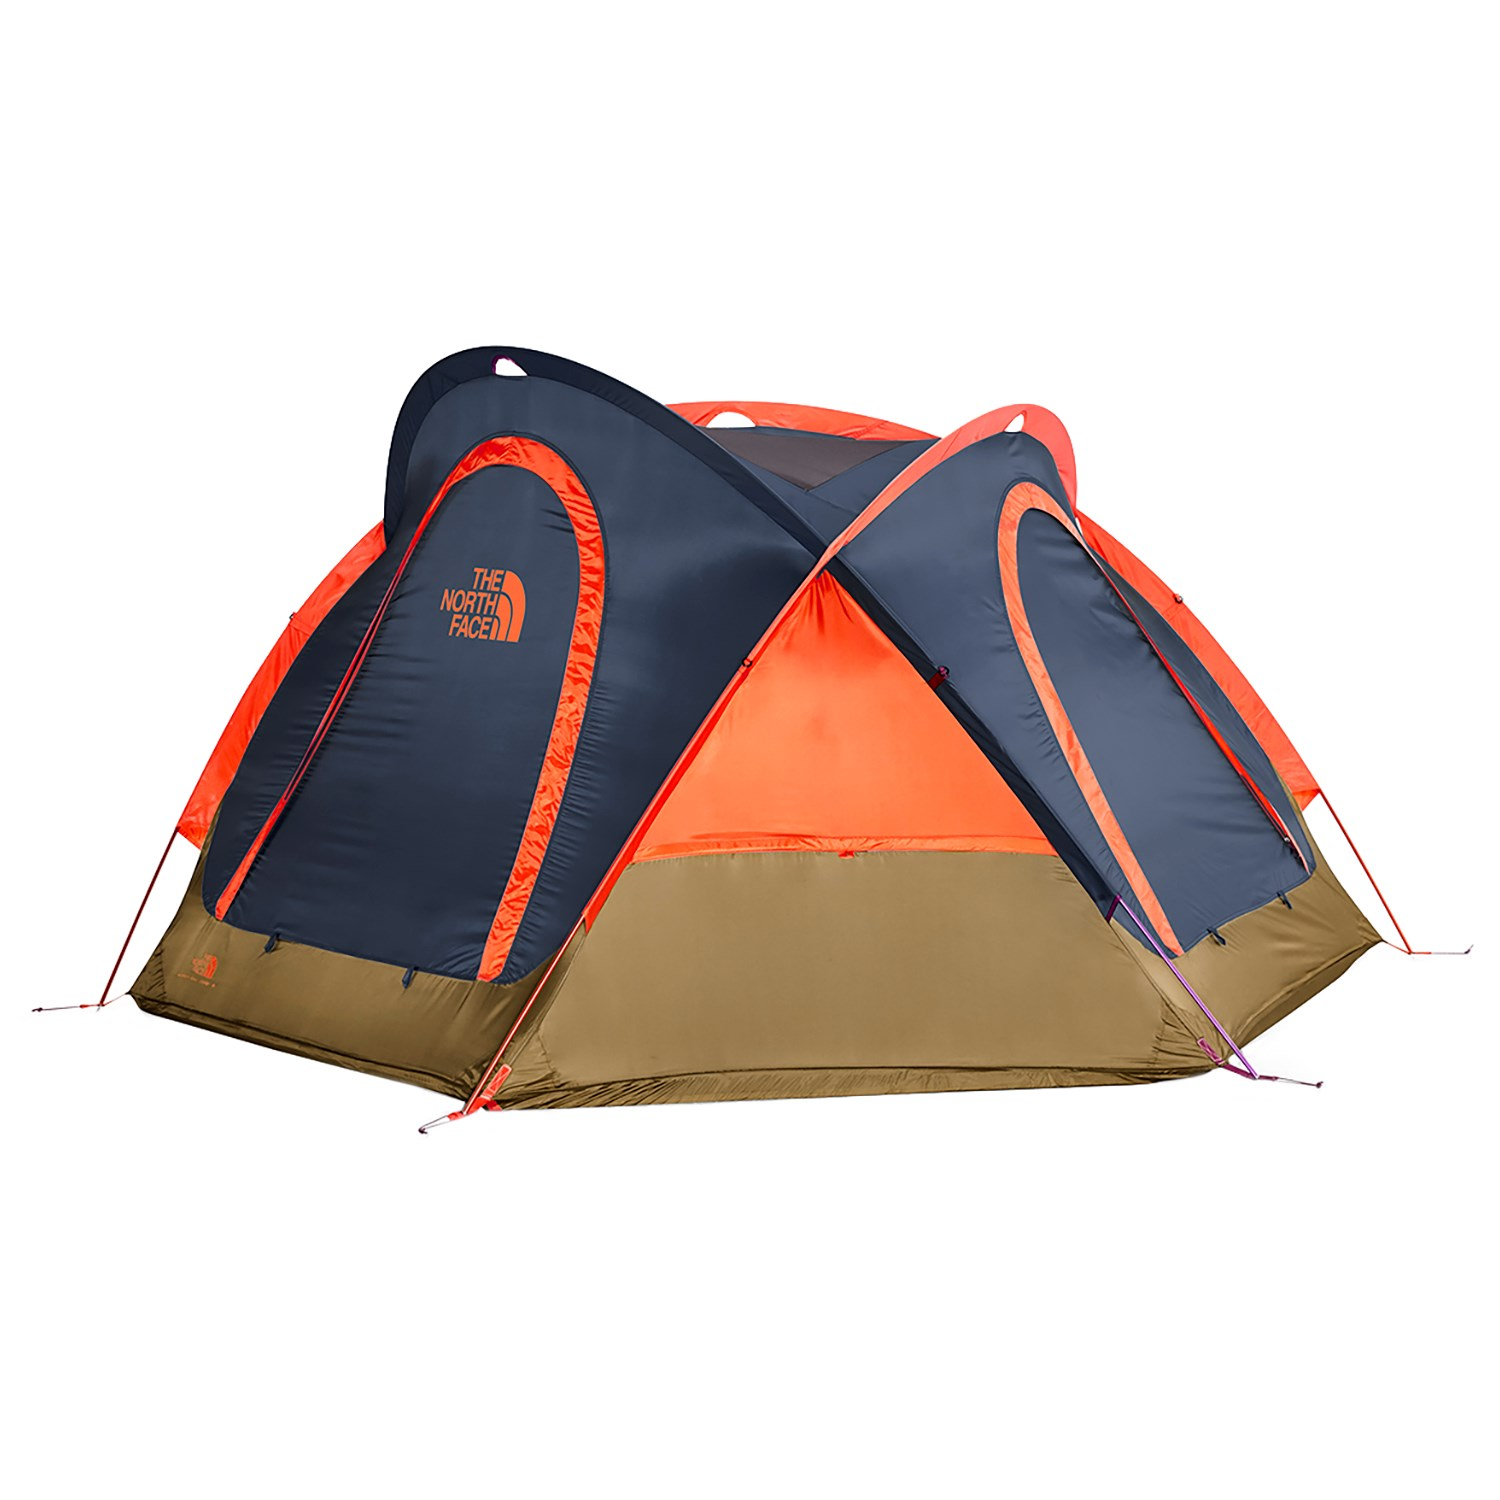 a8ed349e6 The North Face Homestead Domey 3 Tent | evo